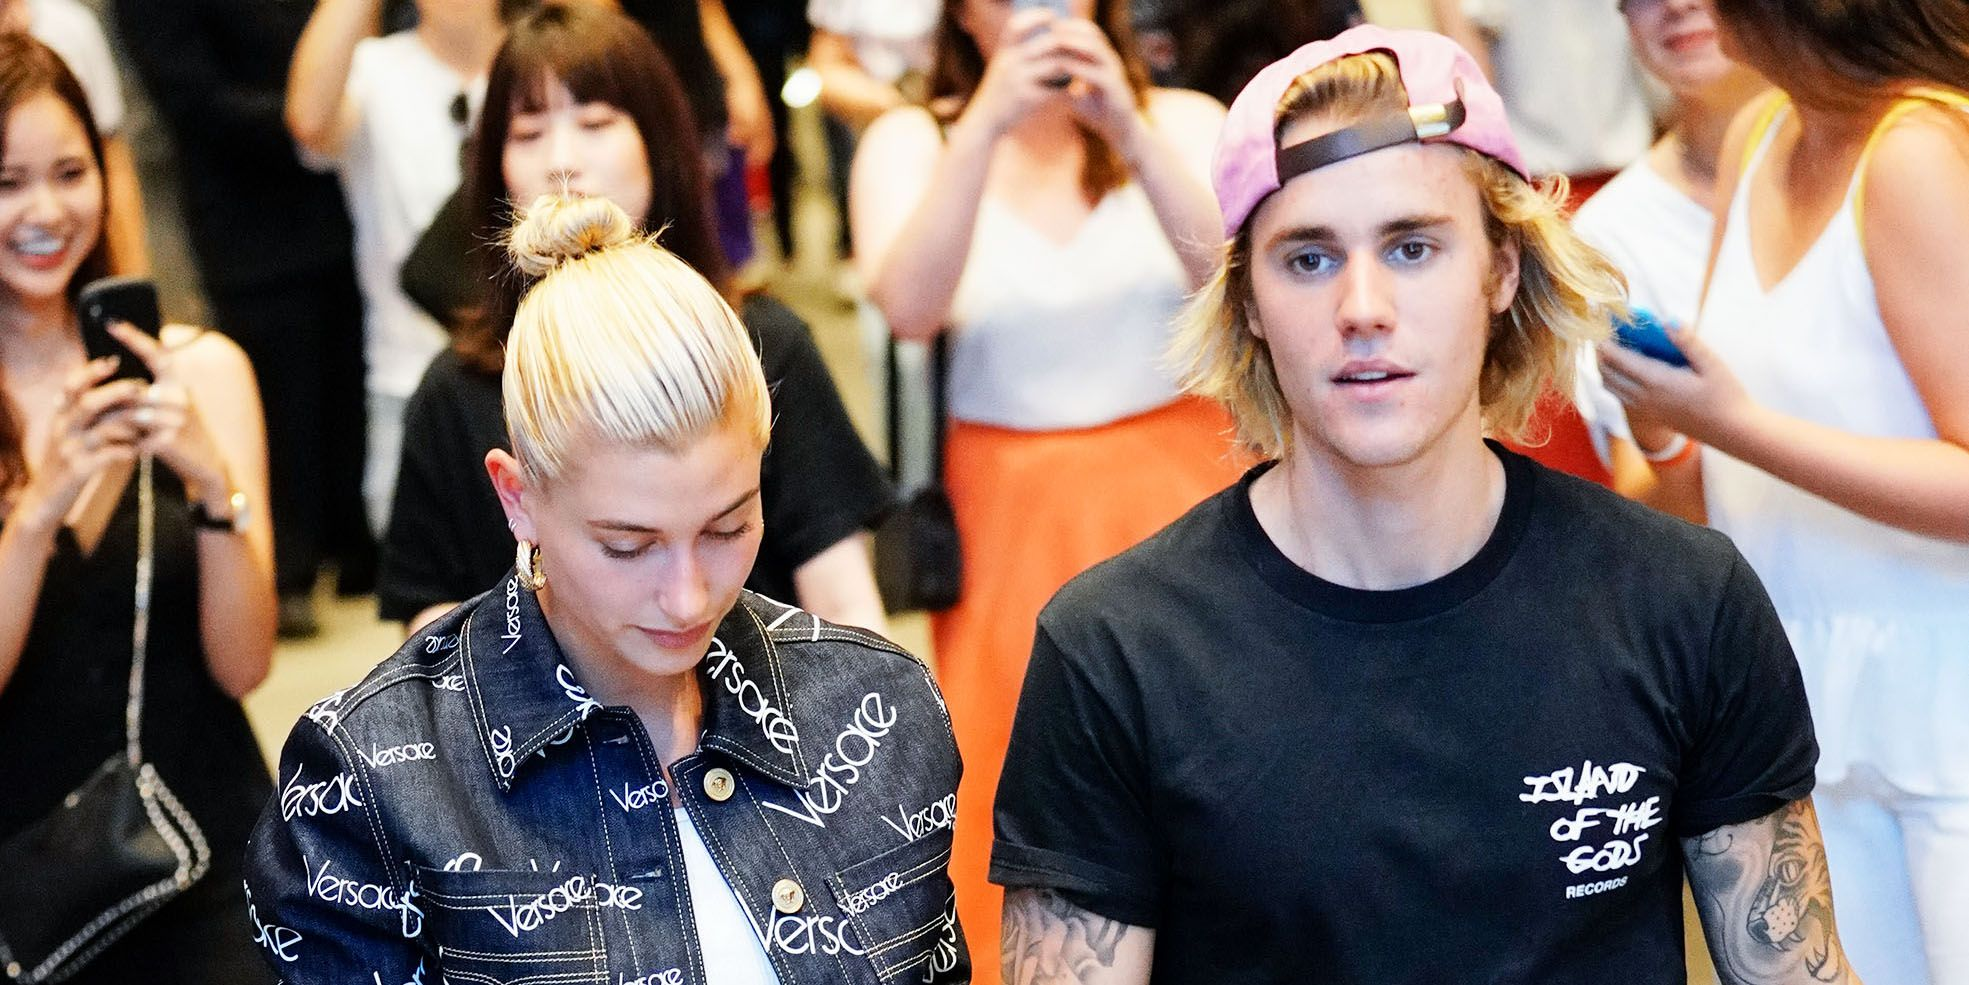 Justin bieber is dating who right now